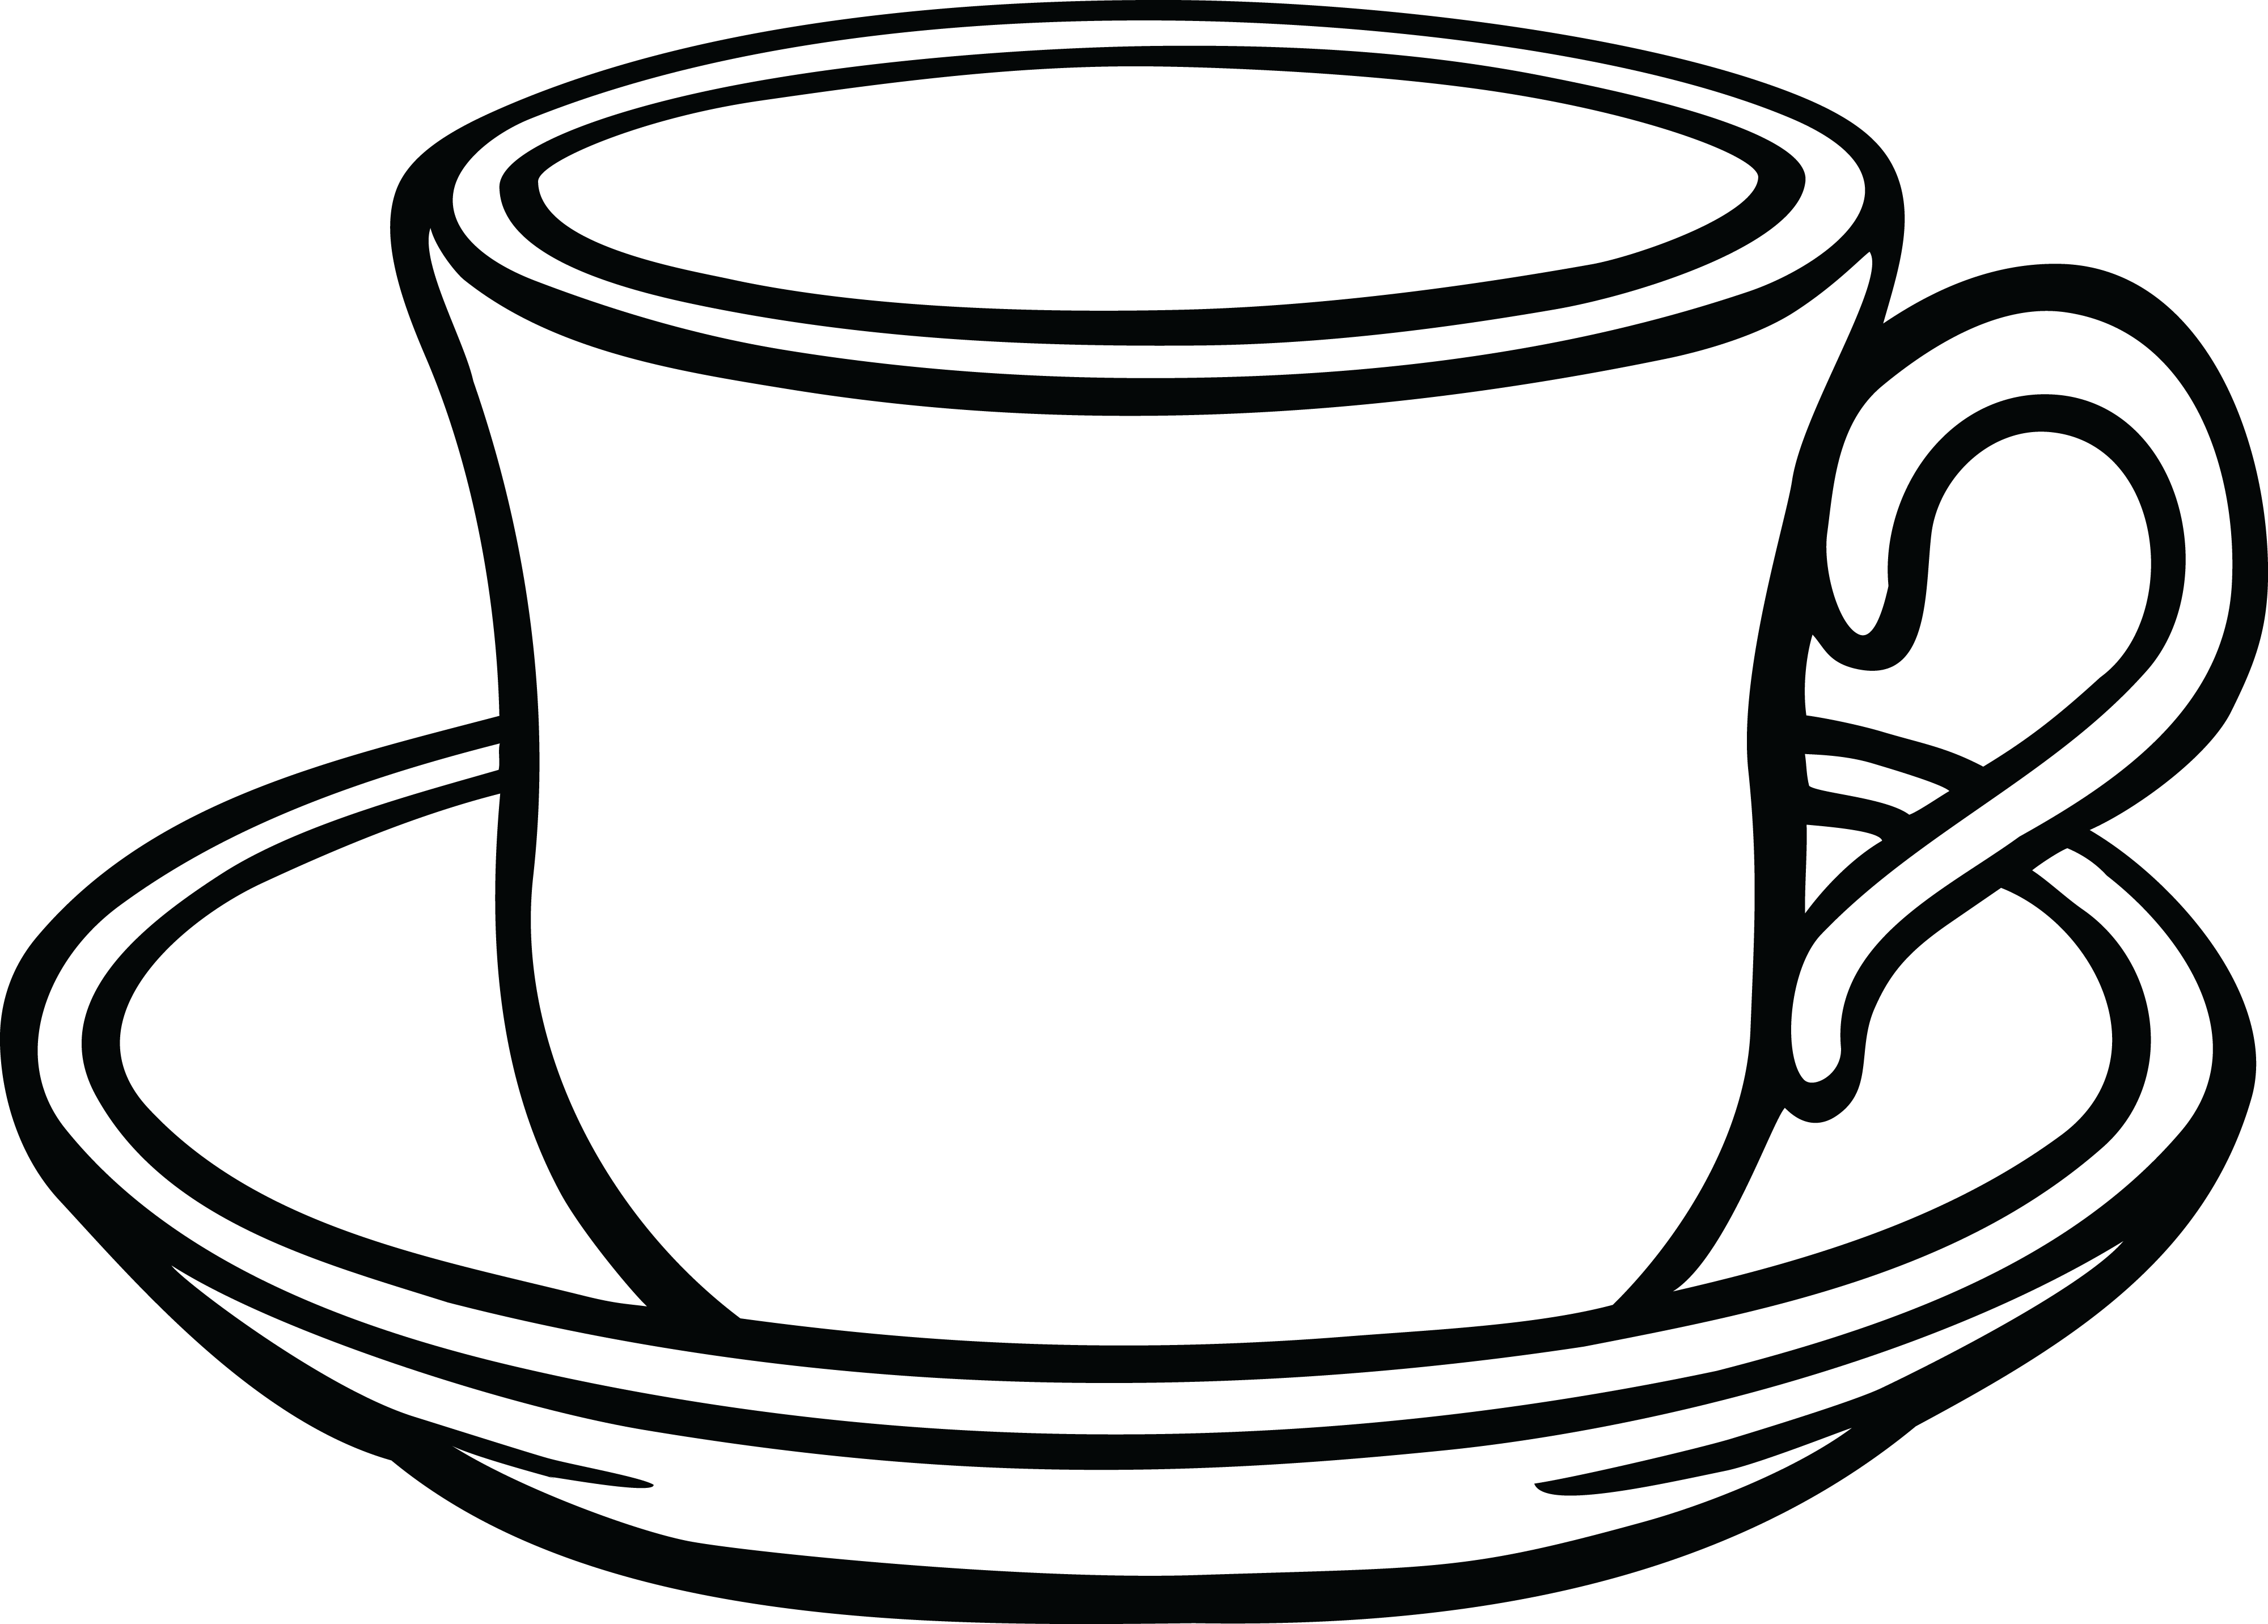 jpg free library Cup clipart black and white.  collection of saucer